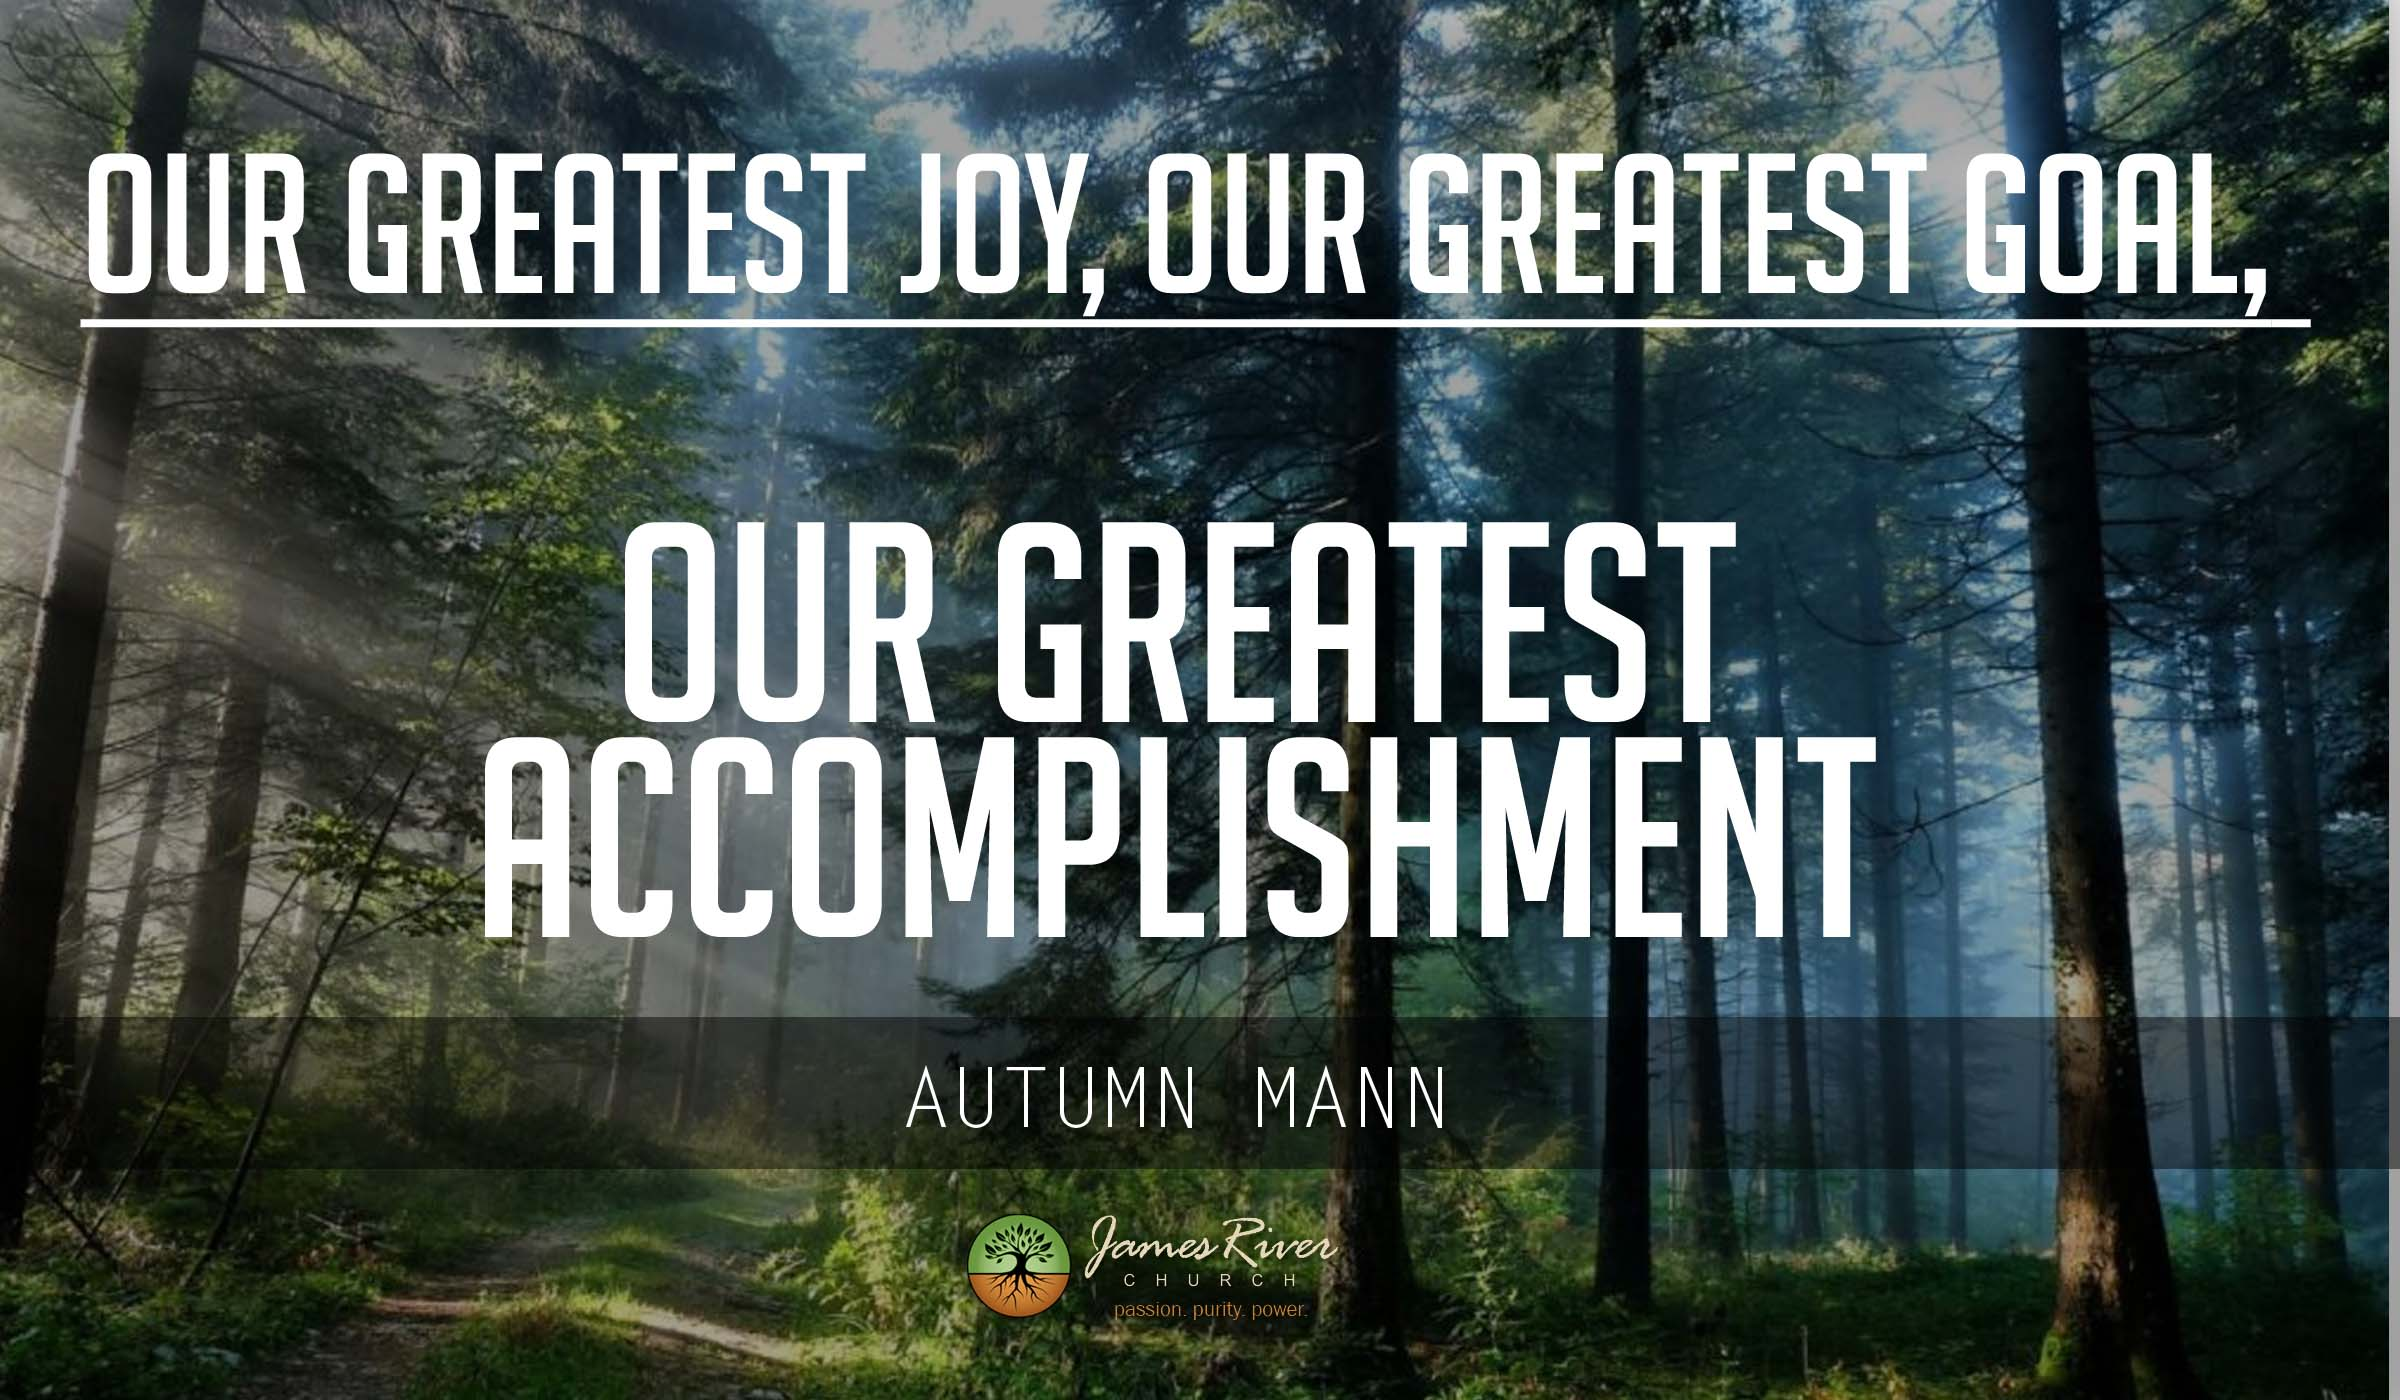 Our Greatest Joy, Our Greatest Goal, Our Greatest Accomplishment